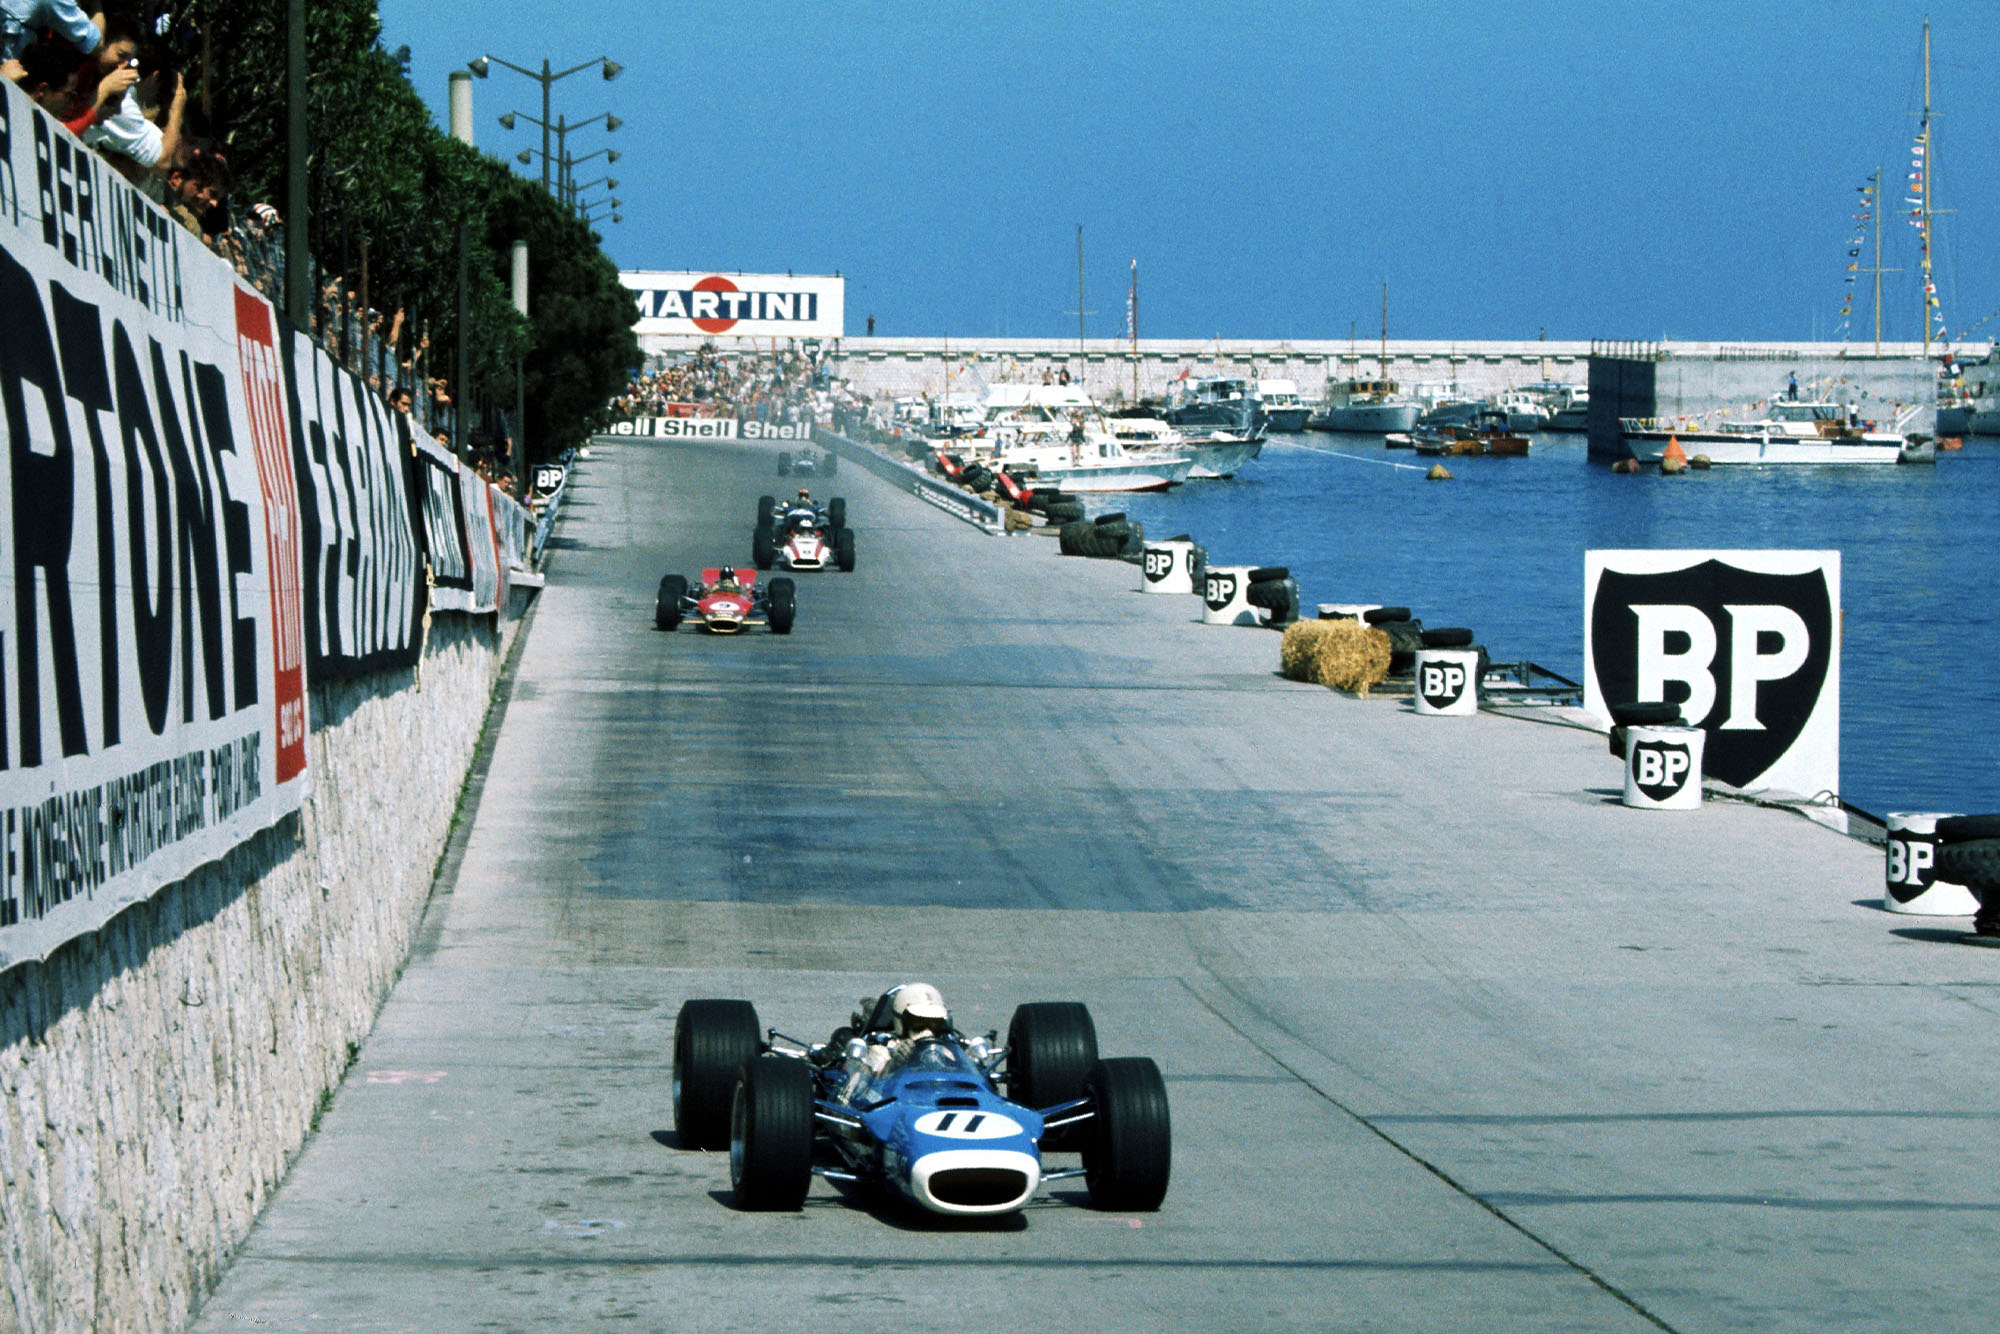 Johnny Servoz-Gavin (FRA), Matra Ford MS10, retired on lap 3 with halfshaft failure. Eventual race winner Graham Hill (GBR), Lotus Ford 49B, is in the background.